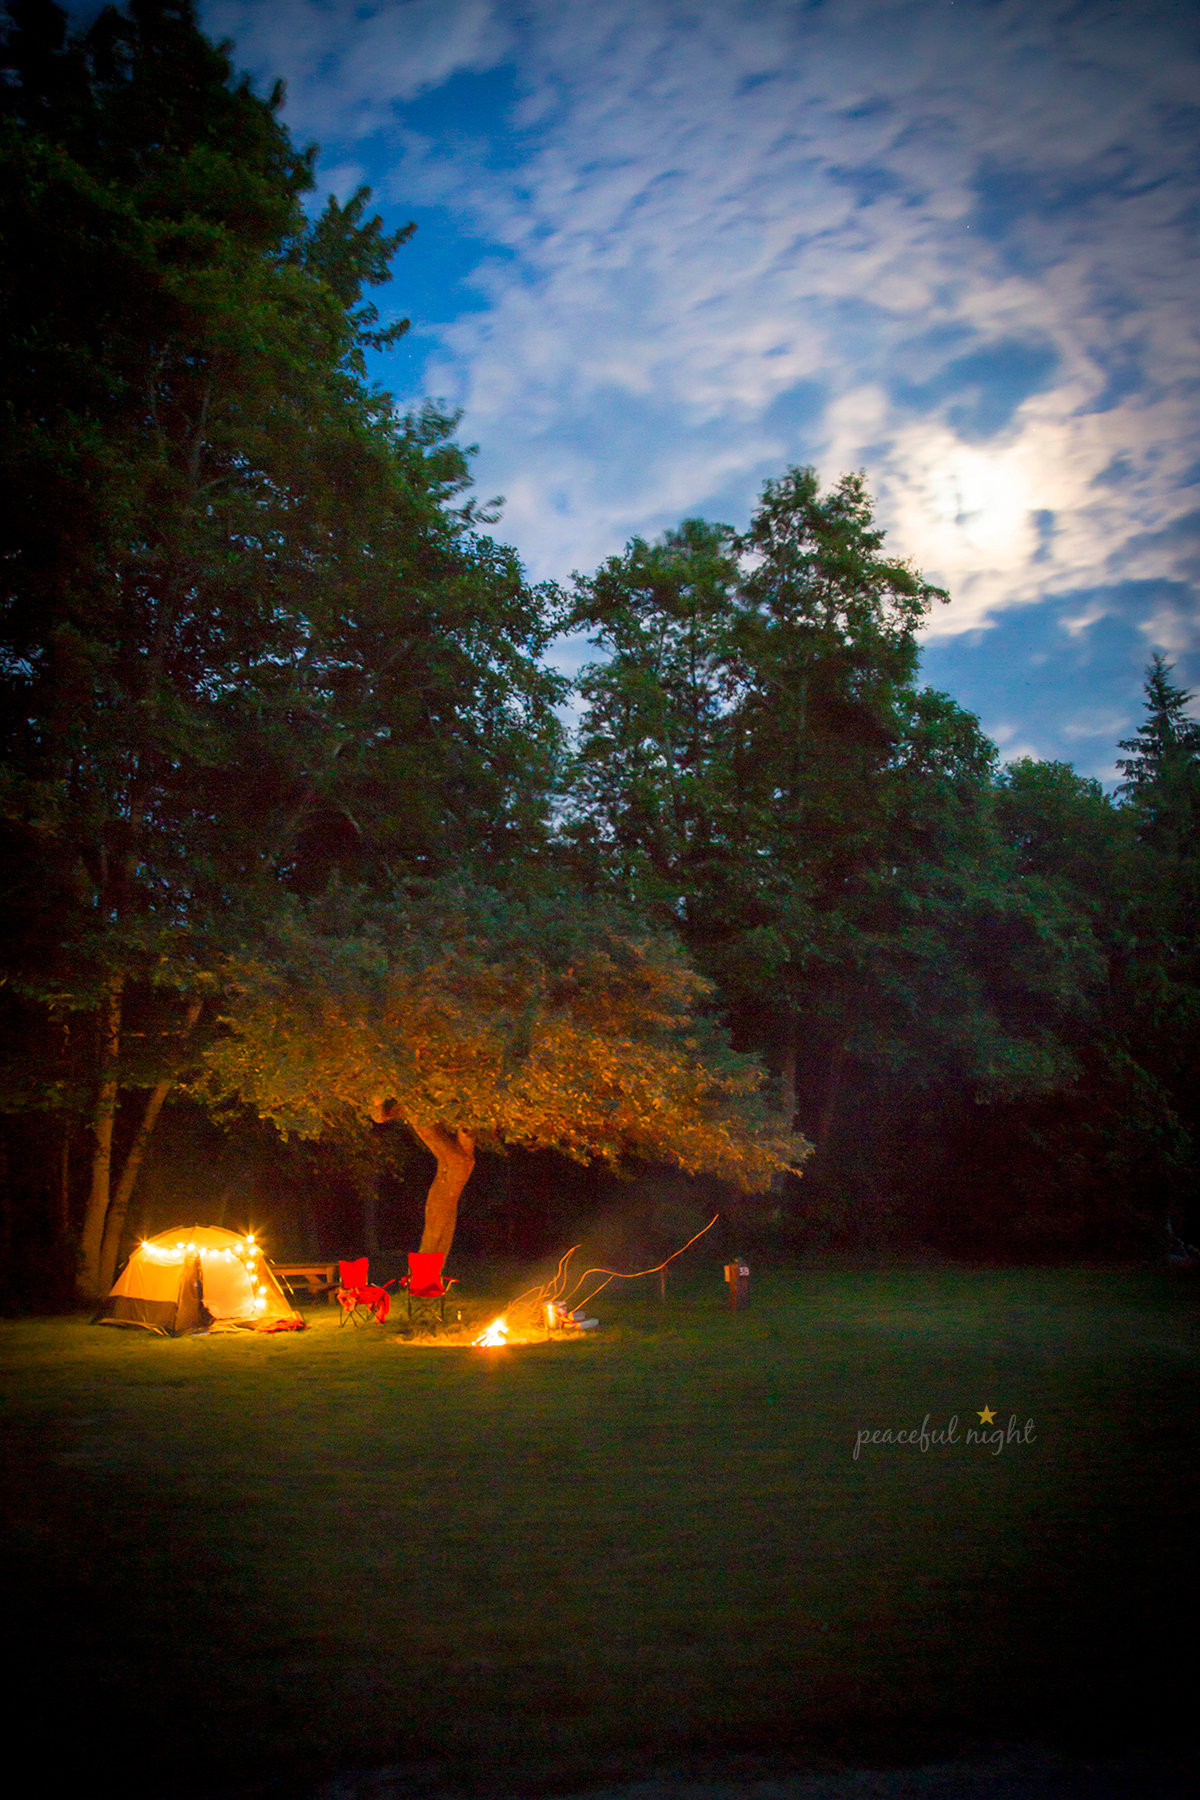 Camp at West Beach Resort on Orcas Island via J5MM.com